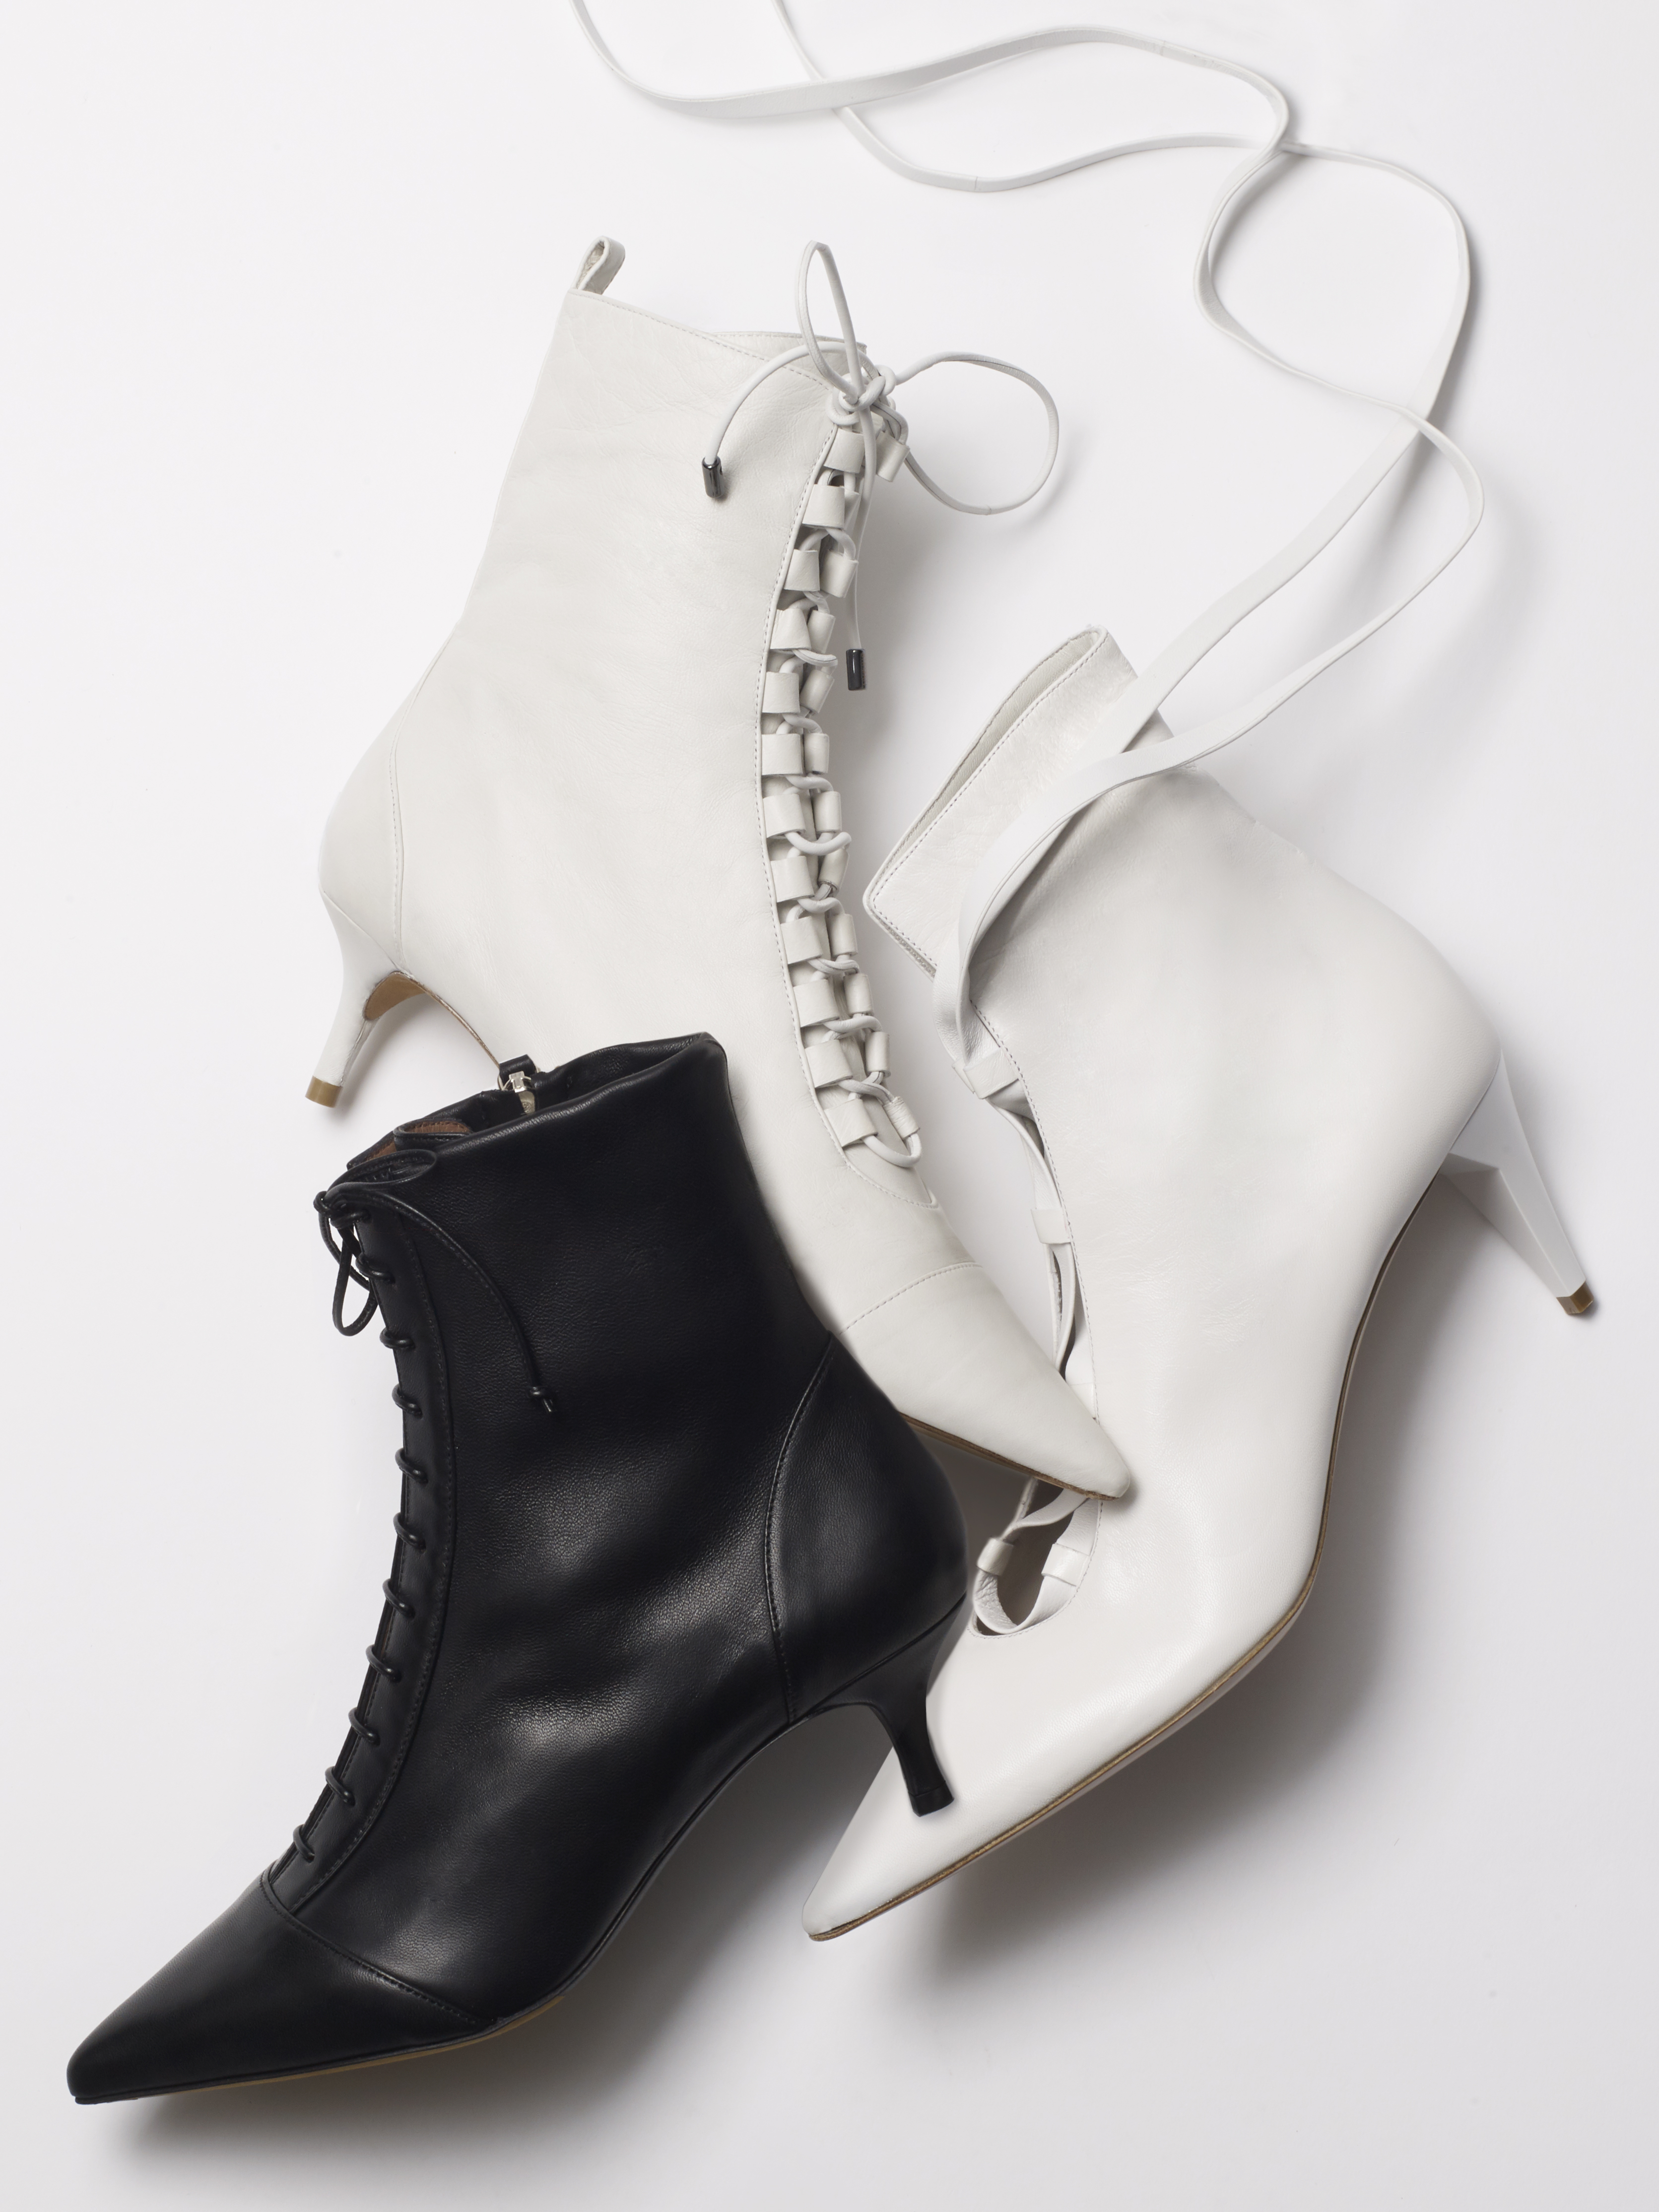 074c5a58fef 13 Lace-Up Boots  The Designer Edit